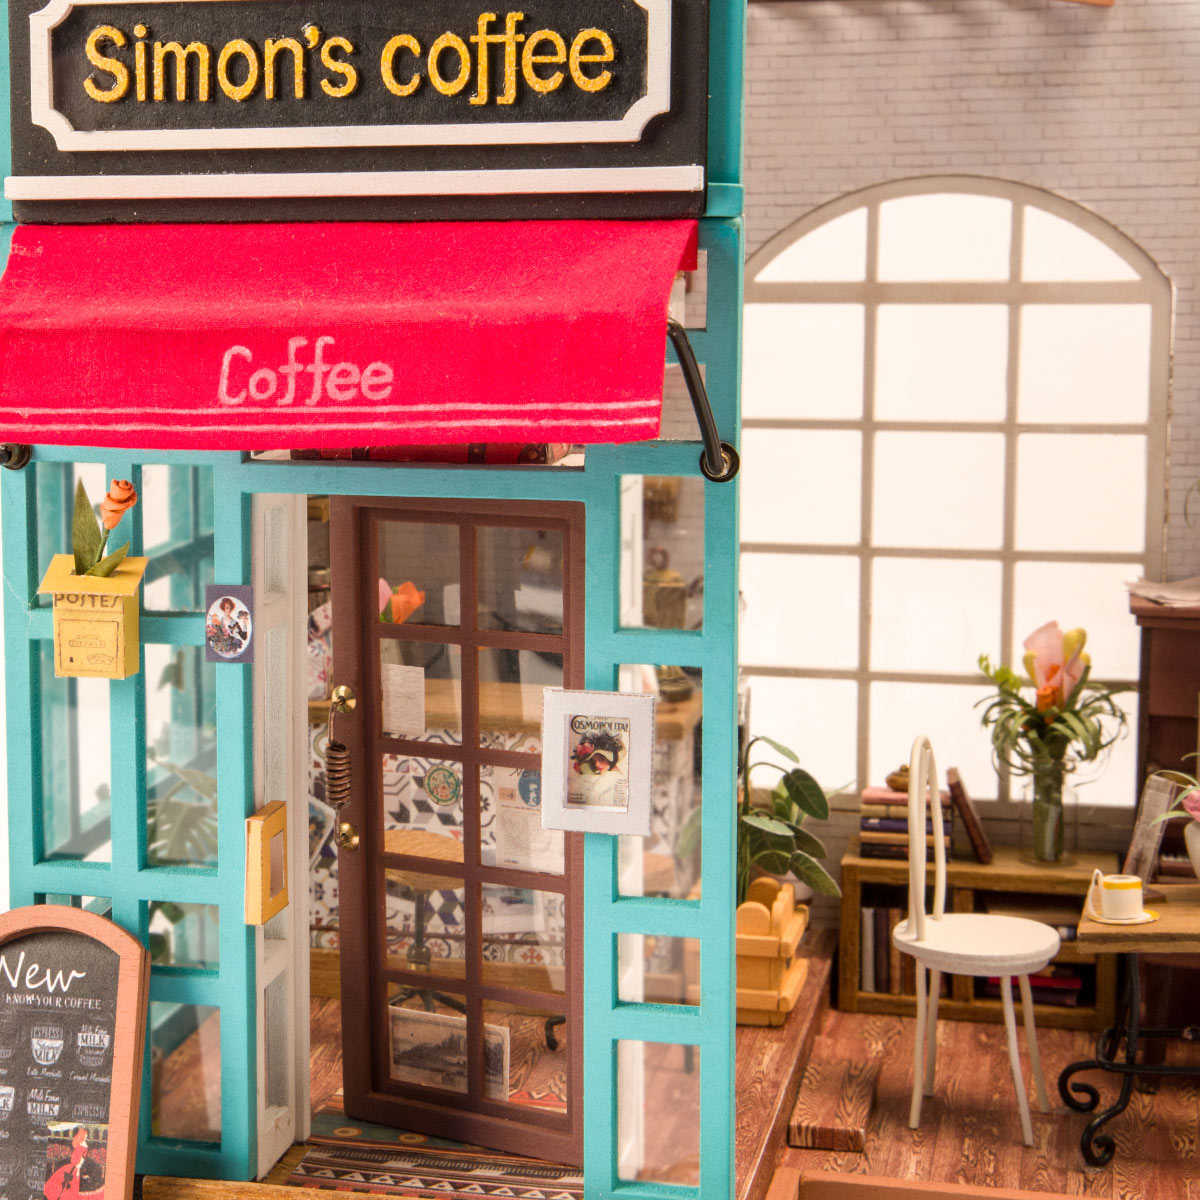 Simon's Coffee DG109